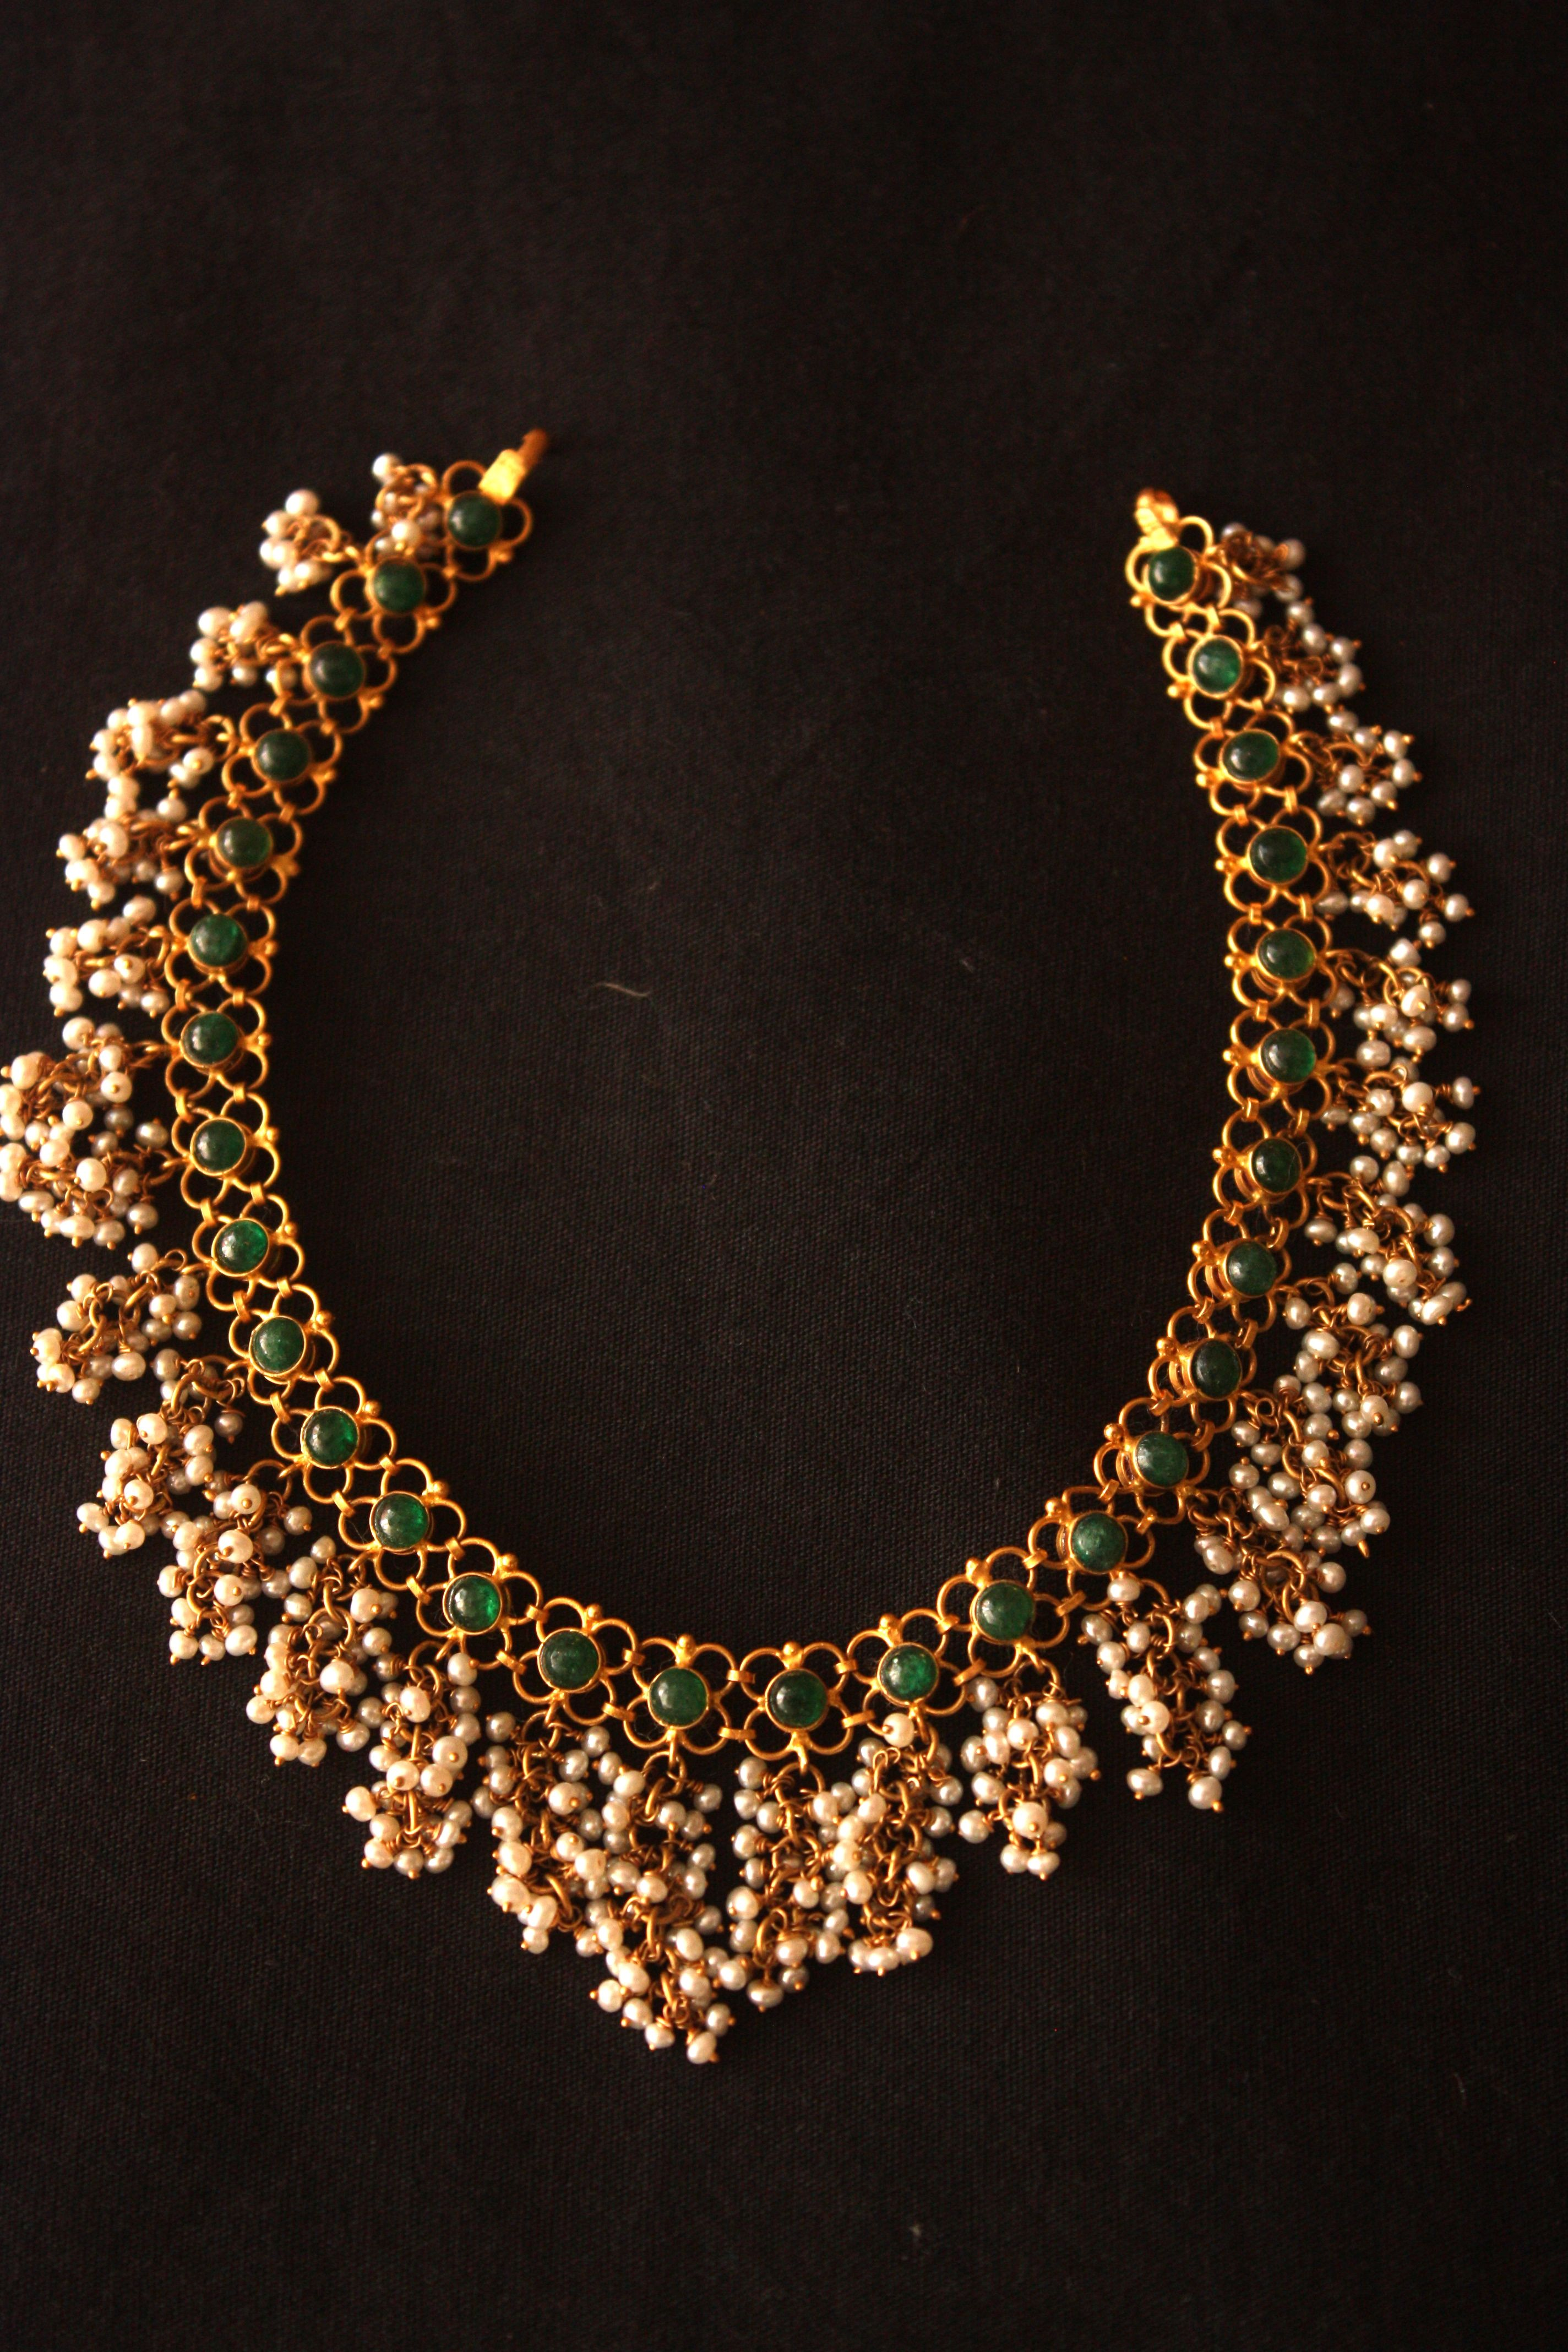 Beautiful reversible neklace with emeralds and pearls and rubies